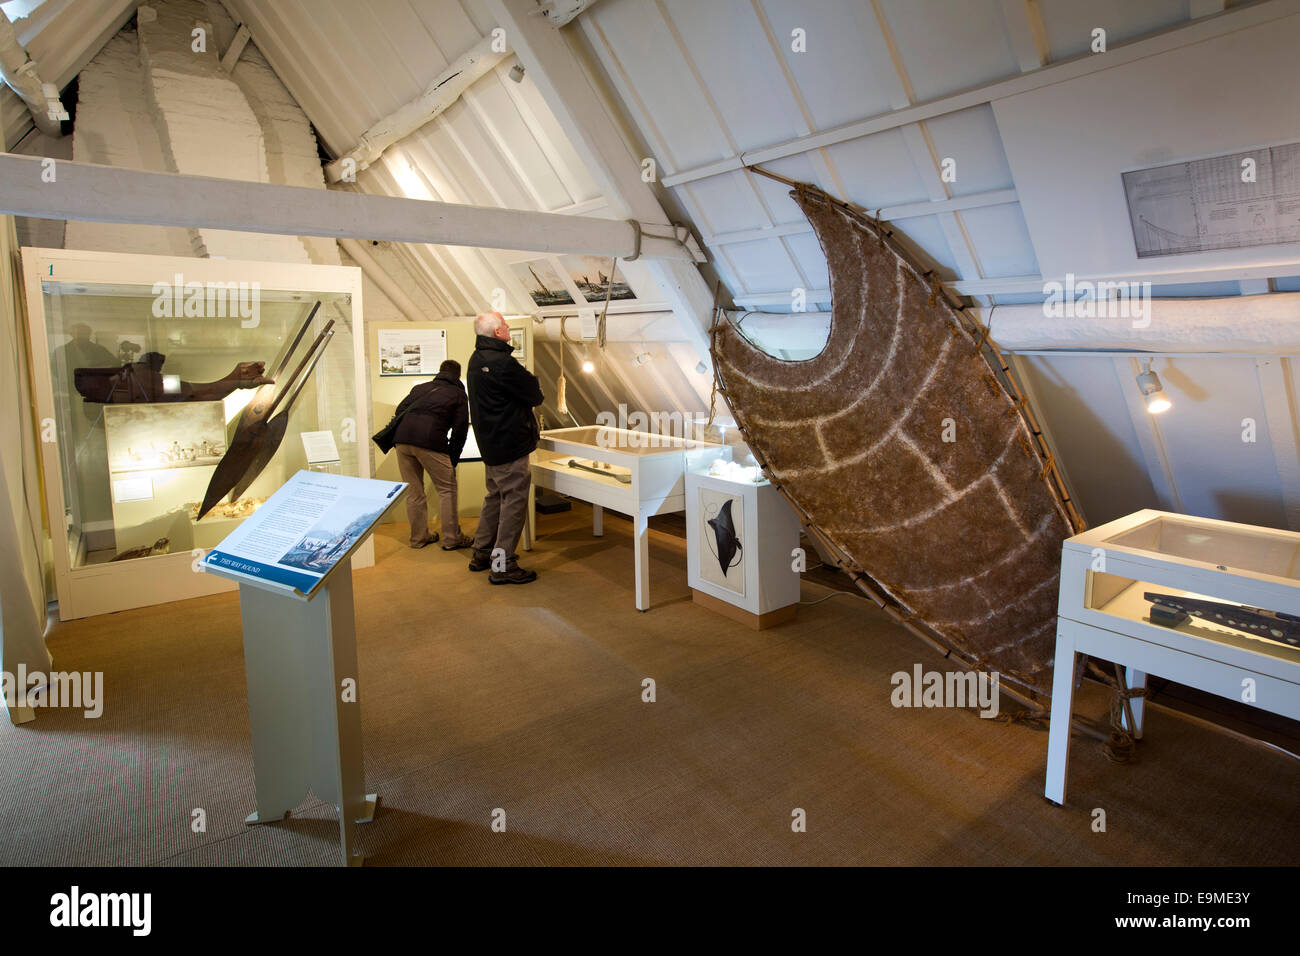 UK, England, Yorkshire, Whitby, Grape Lane, Captain Cook Museum, loft where apprentices slept - Stock Image